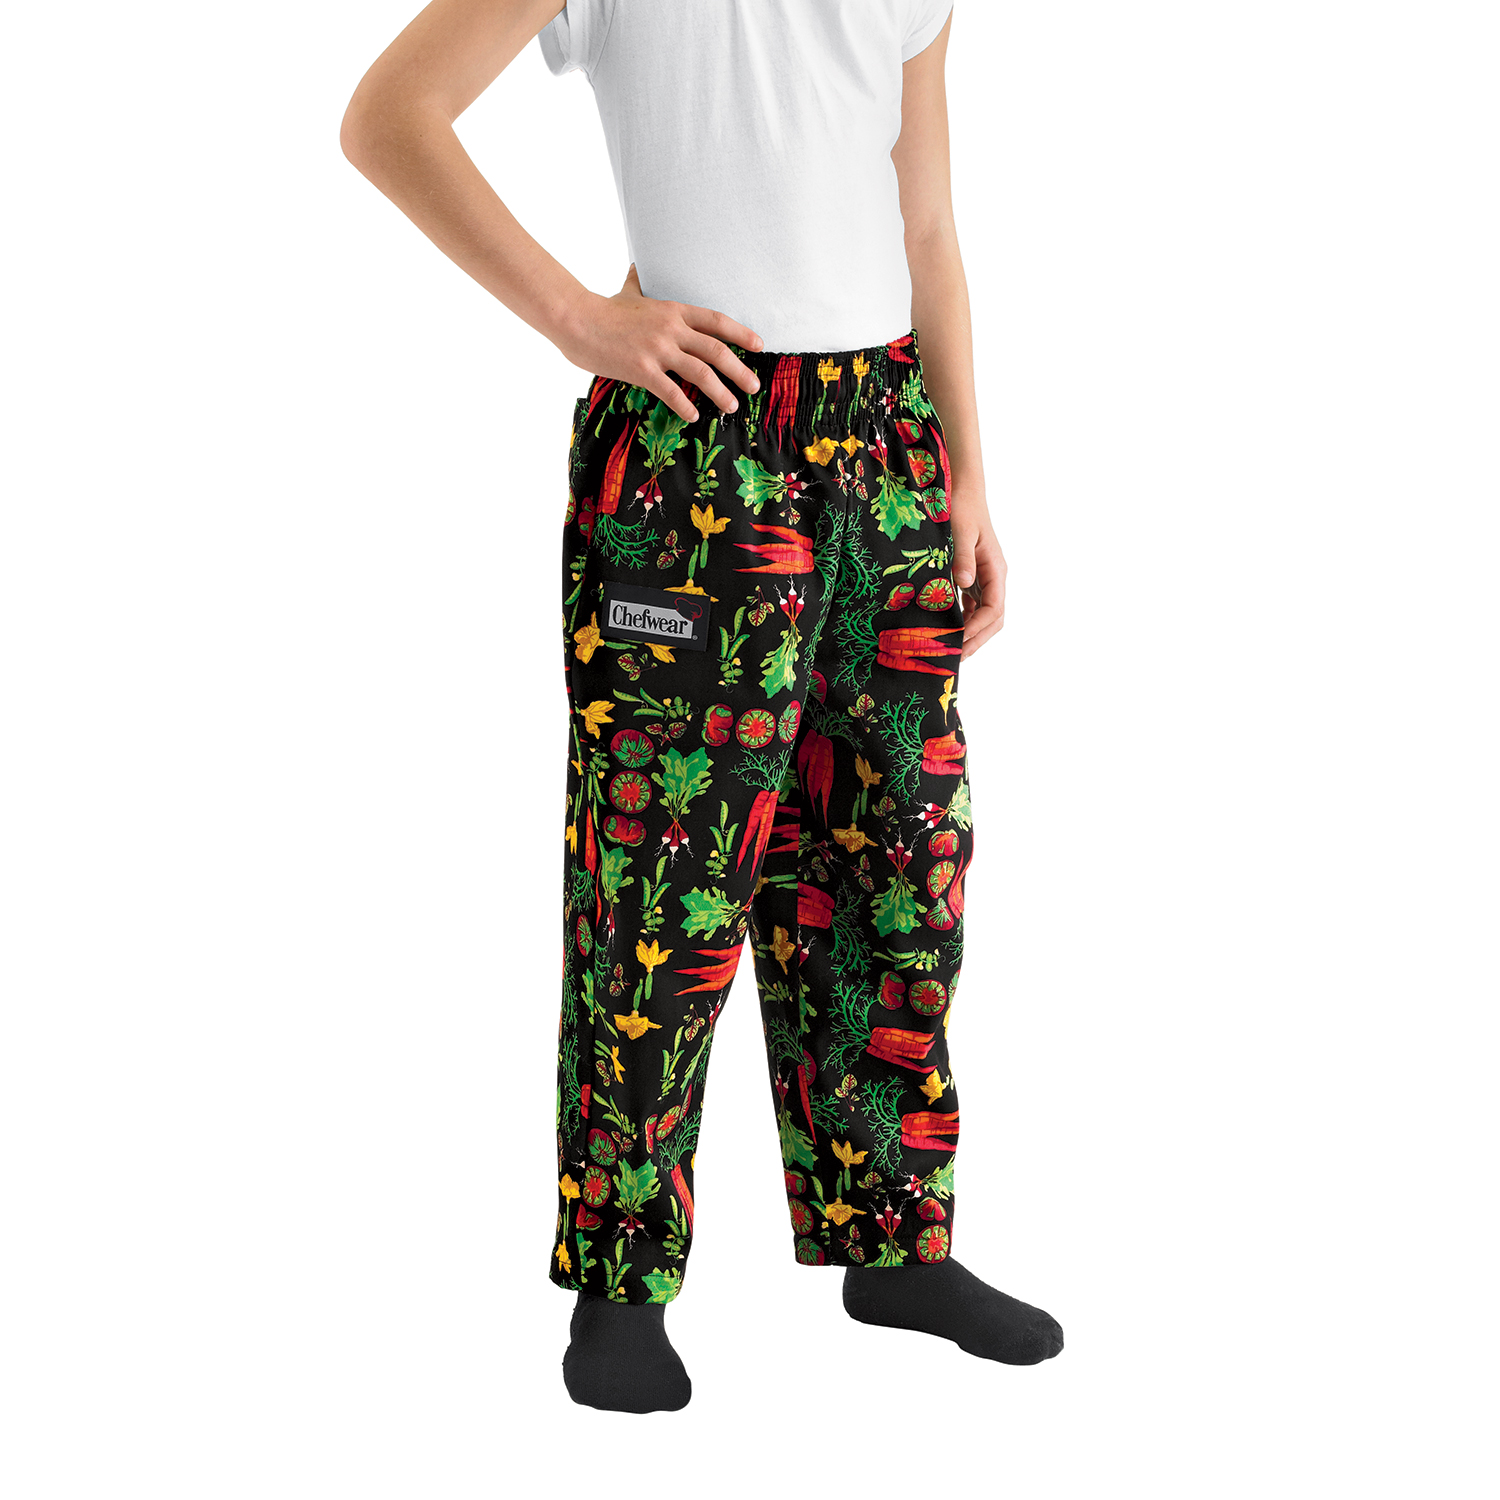 da36e7a4e2b Pint Size Cotton Chef Pants (8200) - Designed and Made for Children